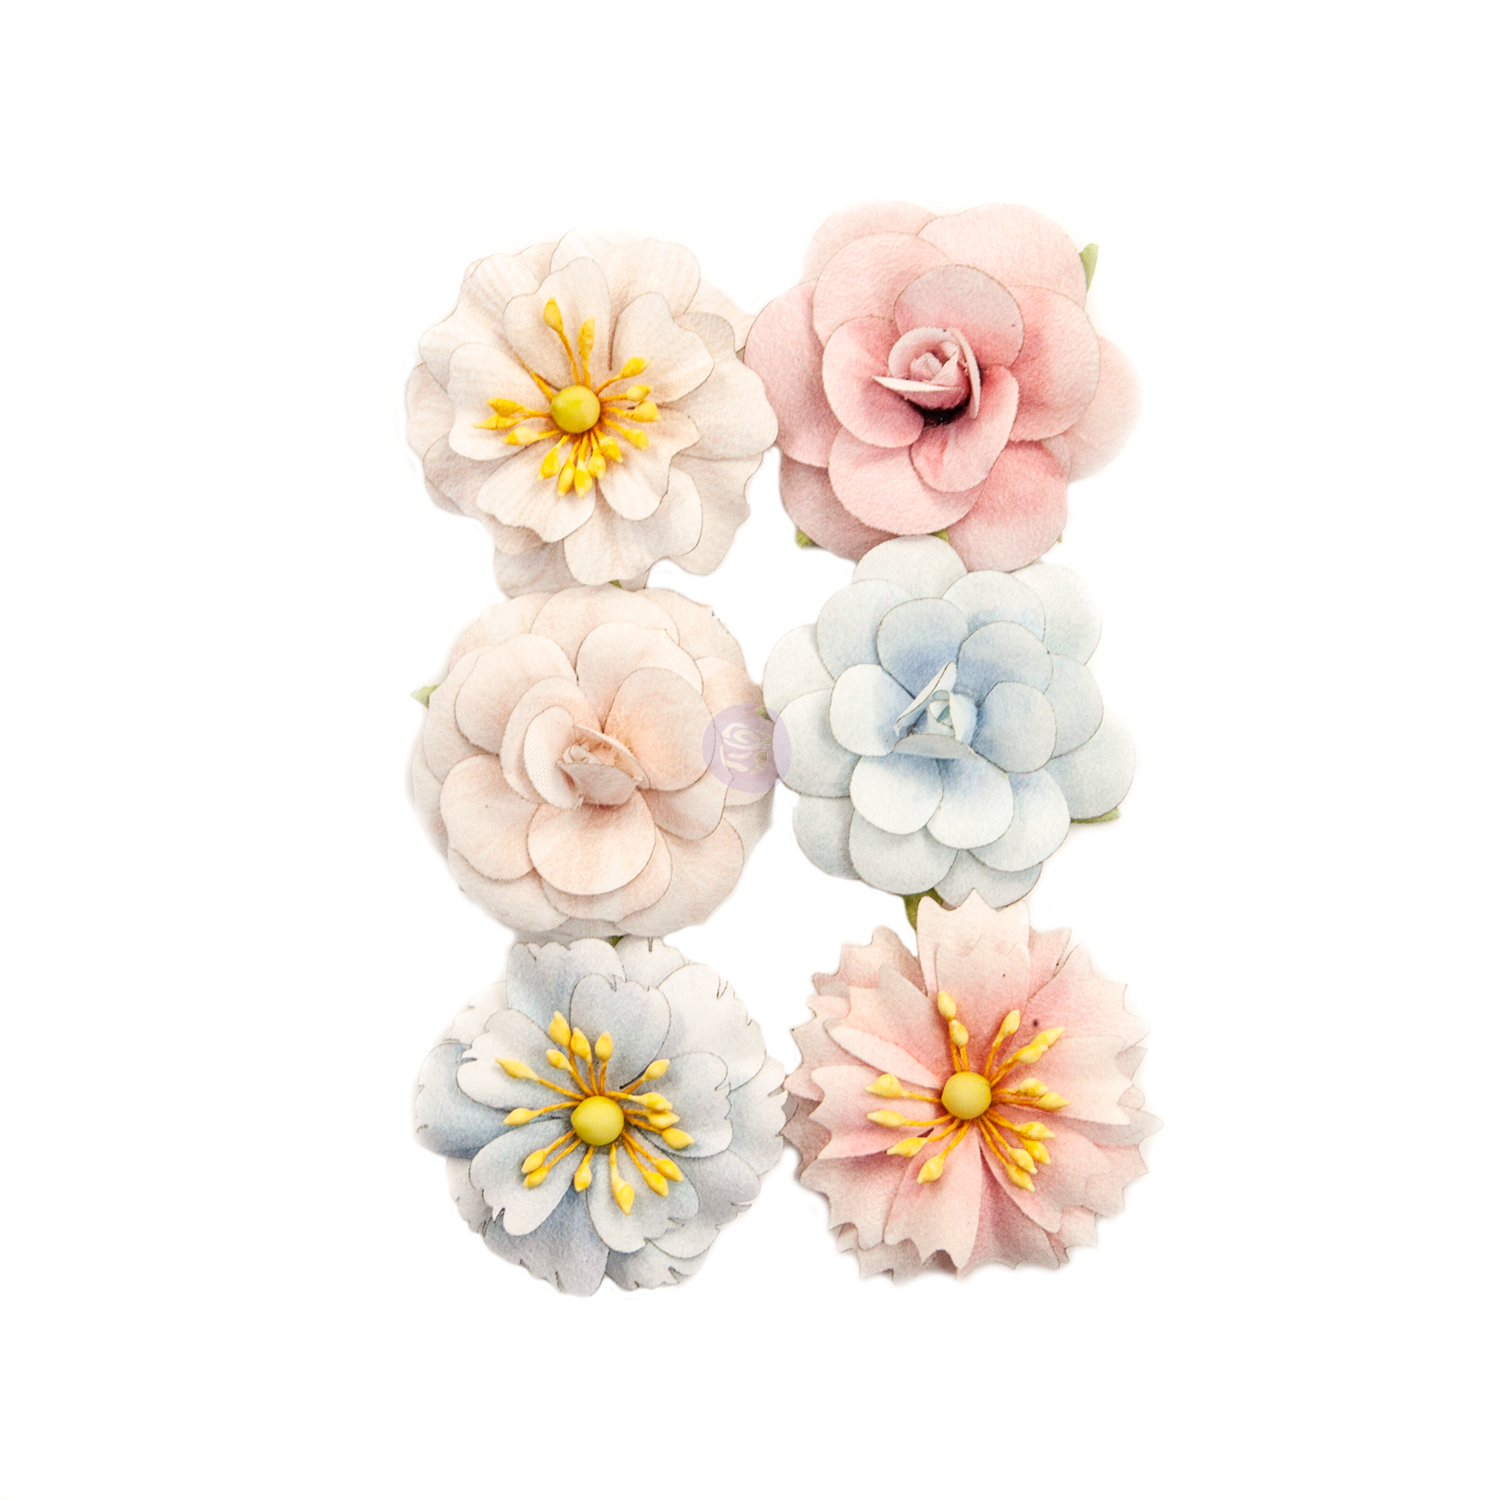 Roses For You - Poetic Rose Flowers - Prima